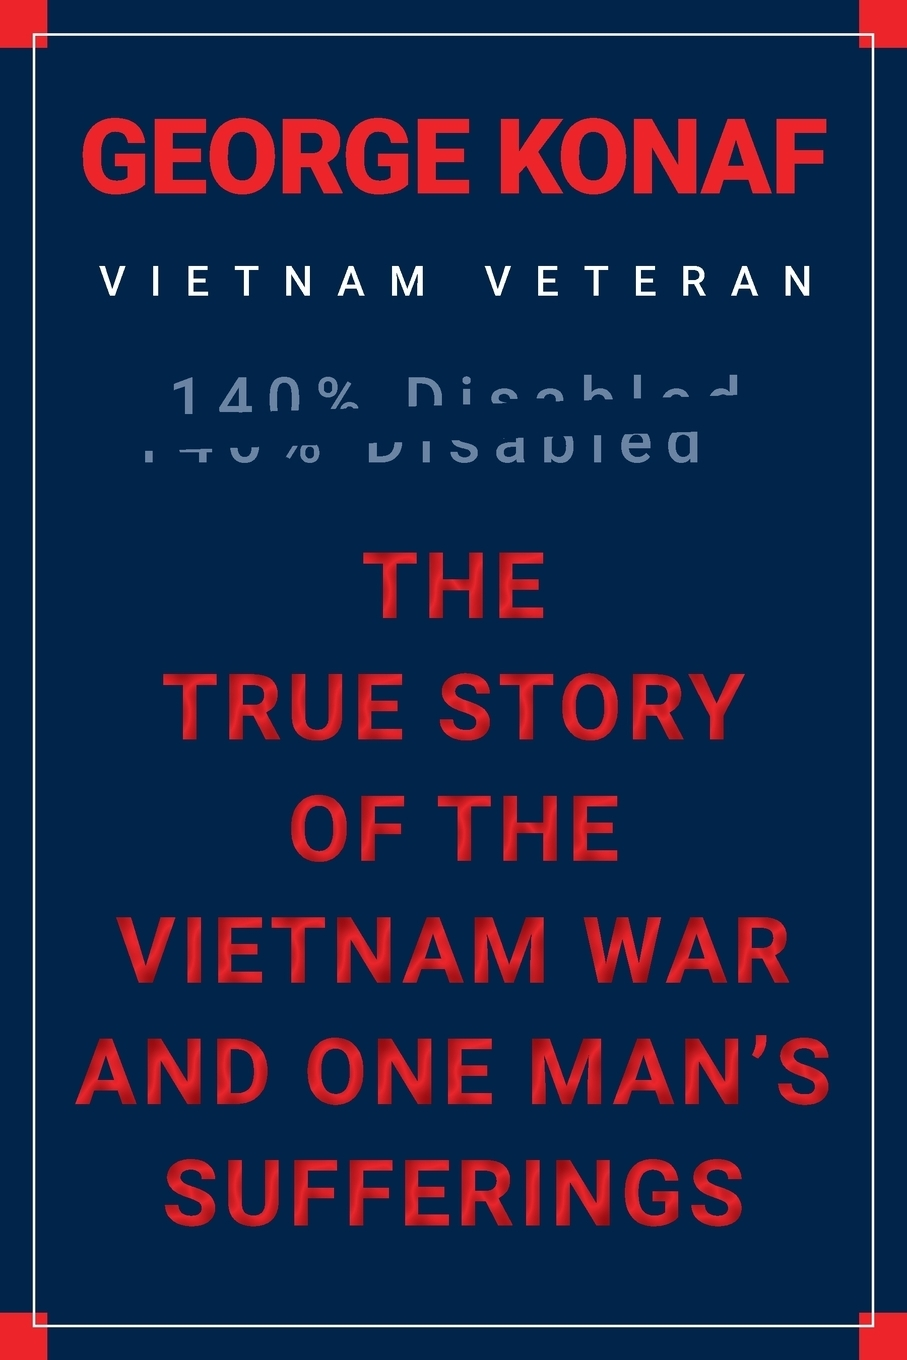 George Konaf. The True Story of the Vietnam War and One Man's Sufferings